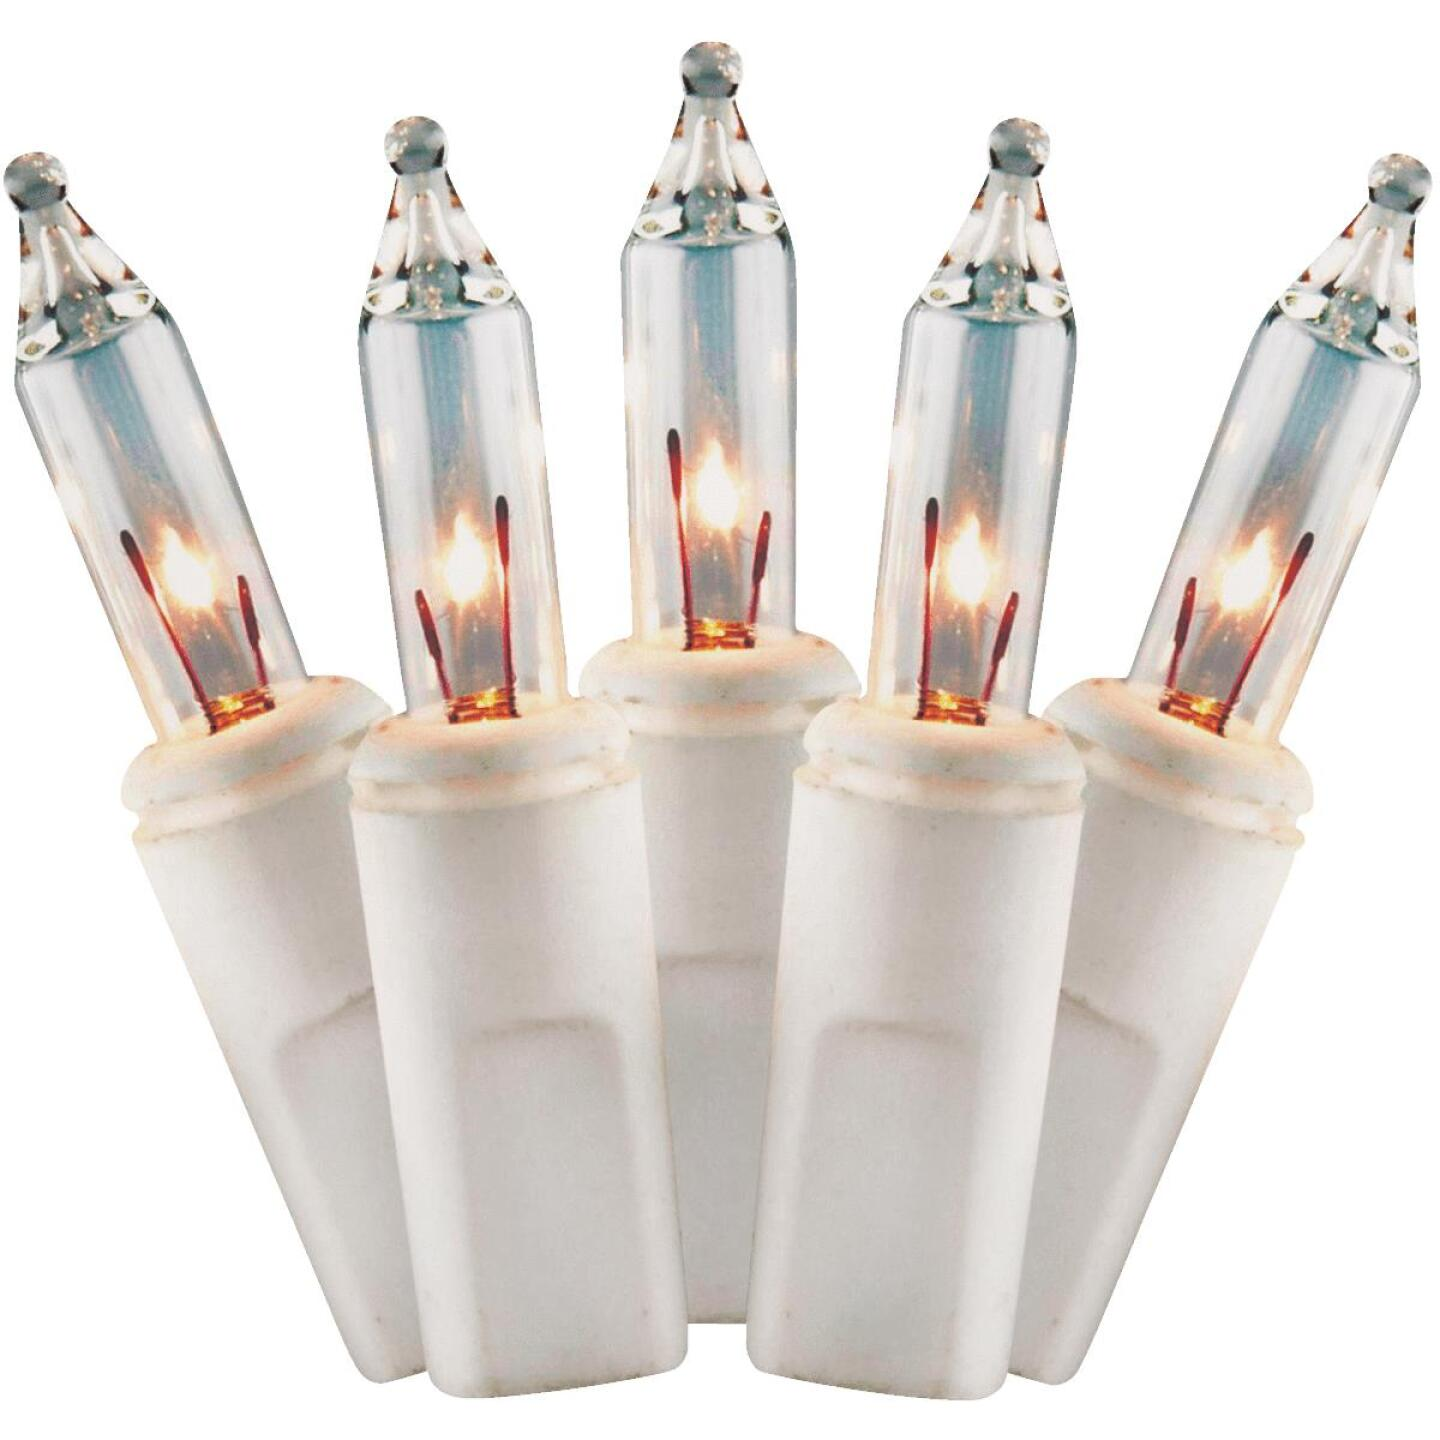 J Hofert Clear 300-Bulb Mini Incandescent Flashing Icicle Light Set with White Wire Image 8